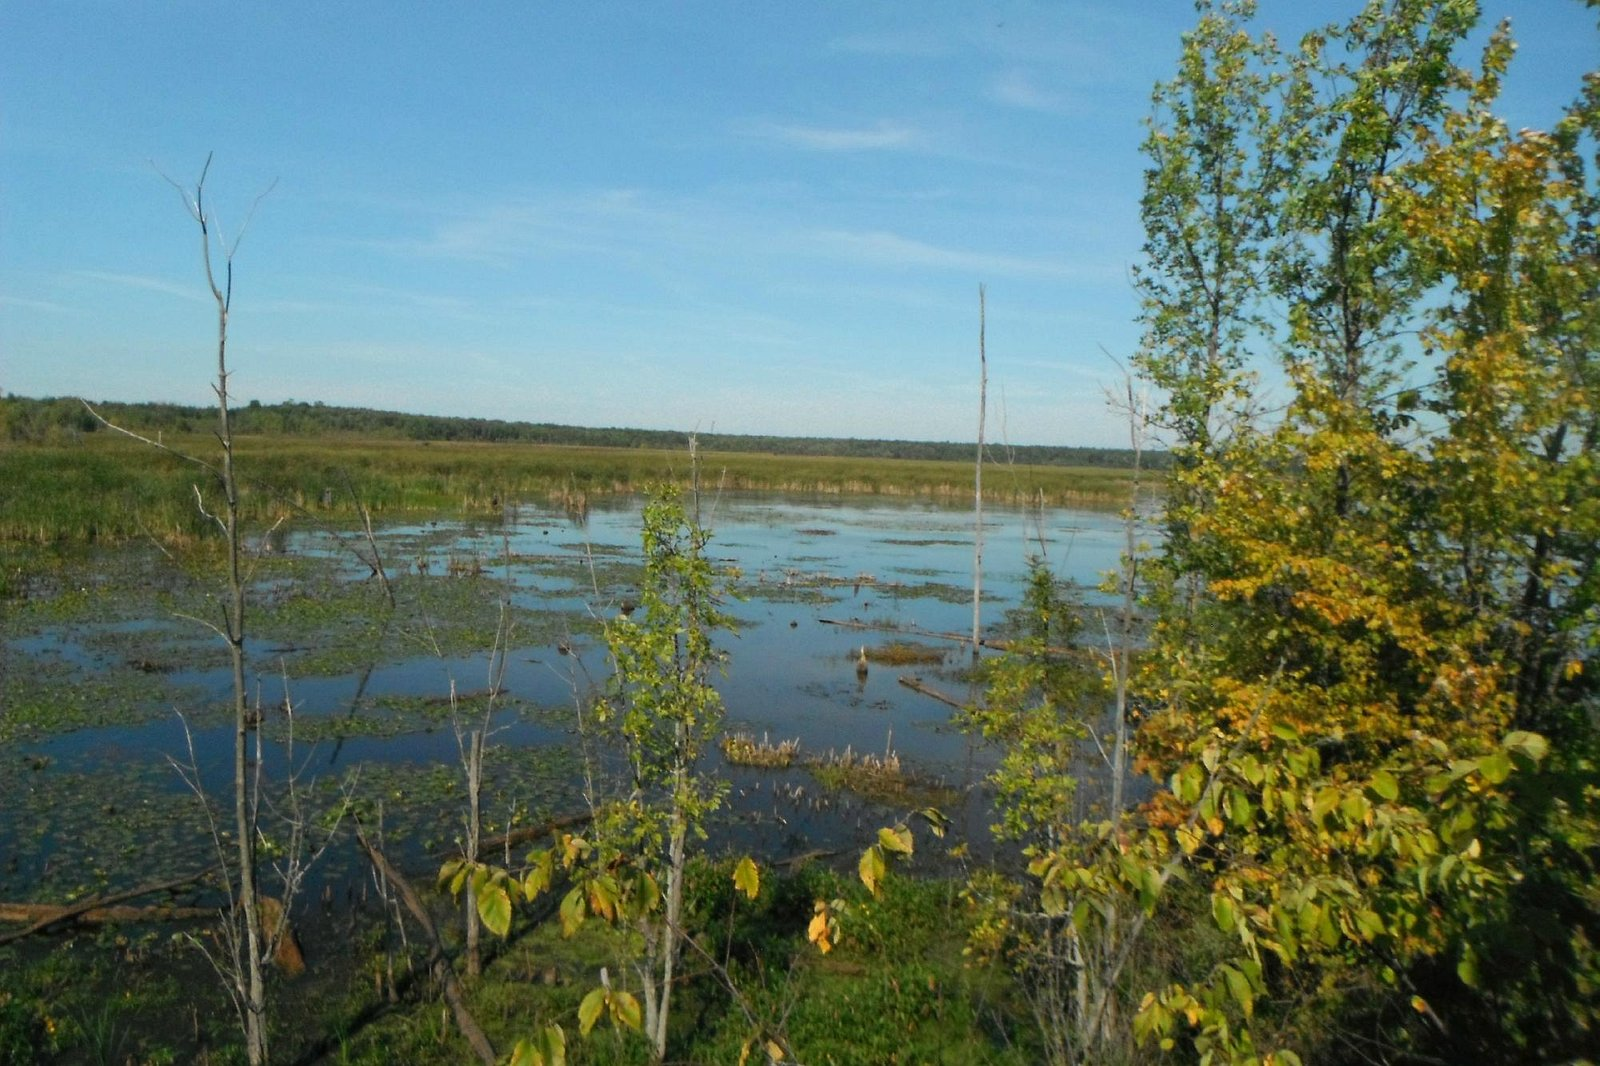 view from the lookout over the marsh